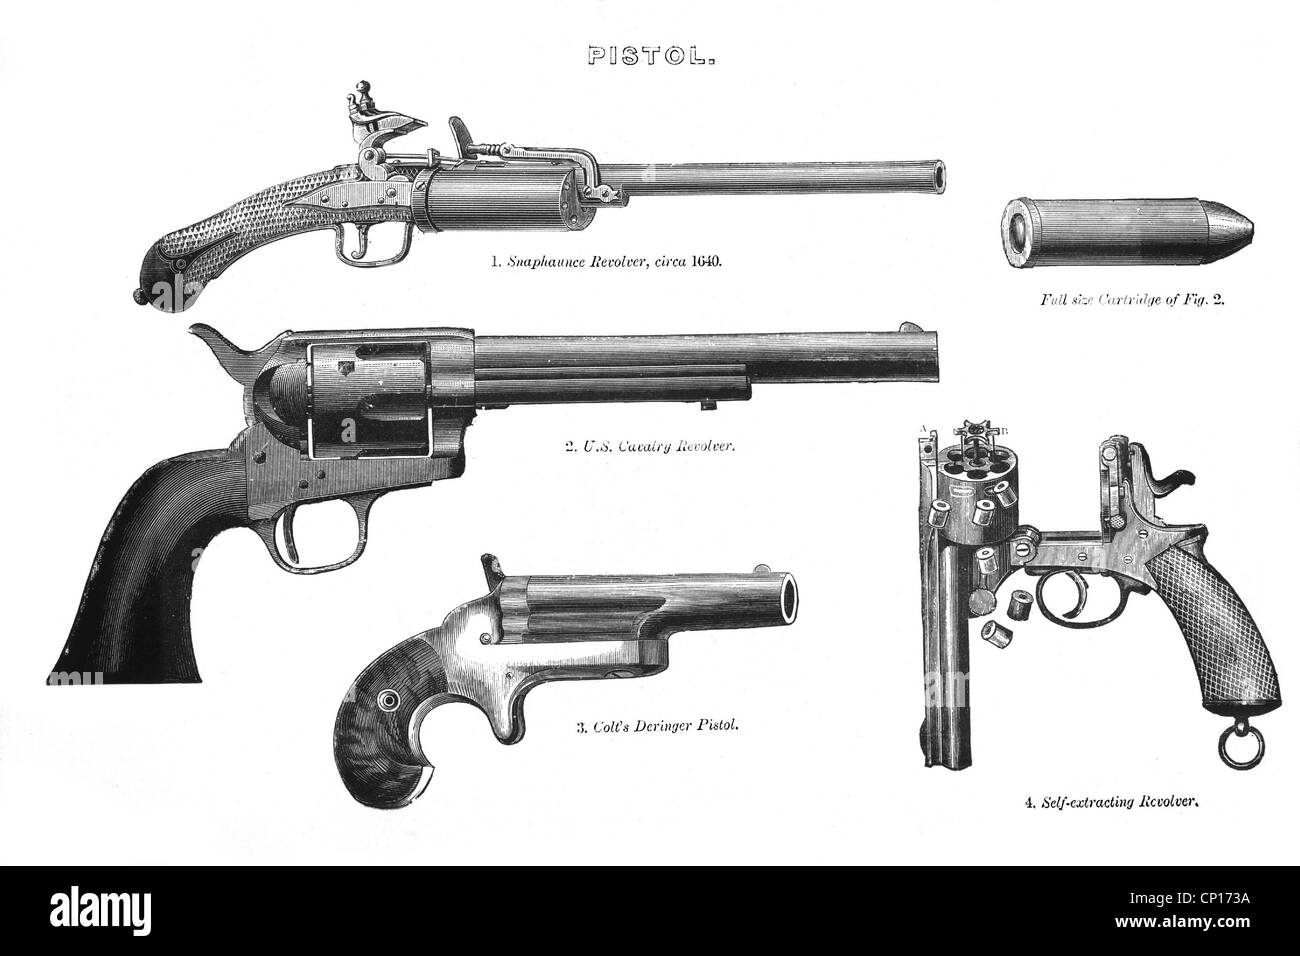 weapon, revolver, snap trigger revolver by Drafte 1650, Colt Army 1873, calibre 45, Colt Derringer, Smith & - Stock Image